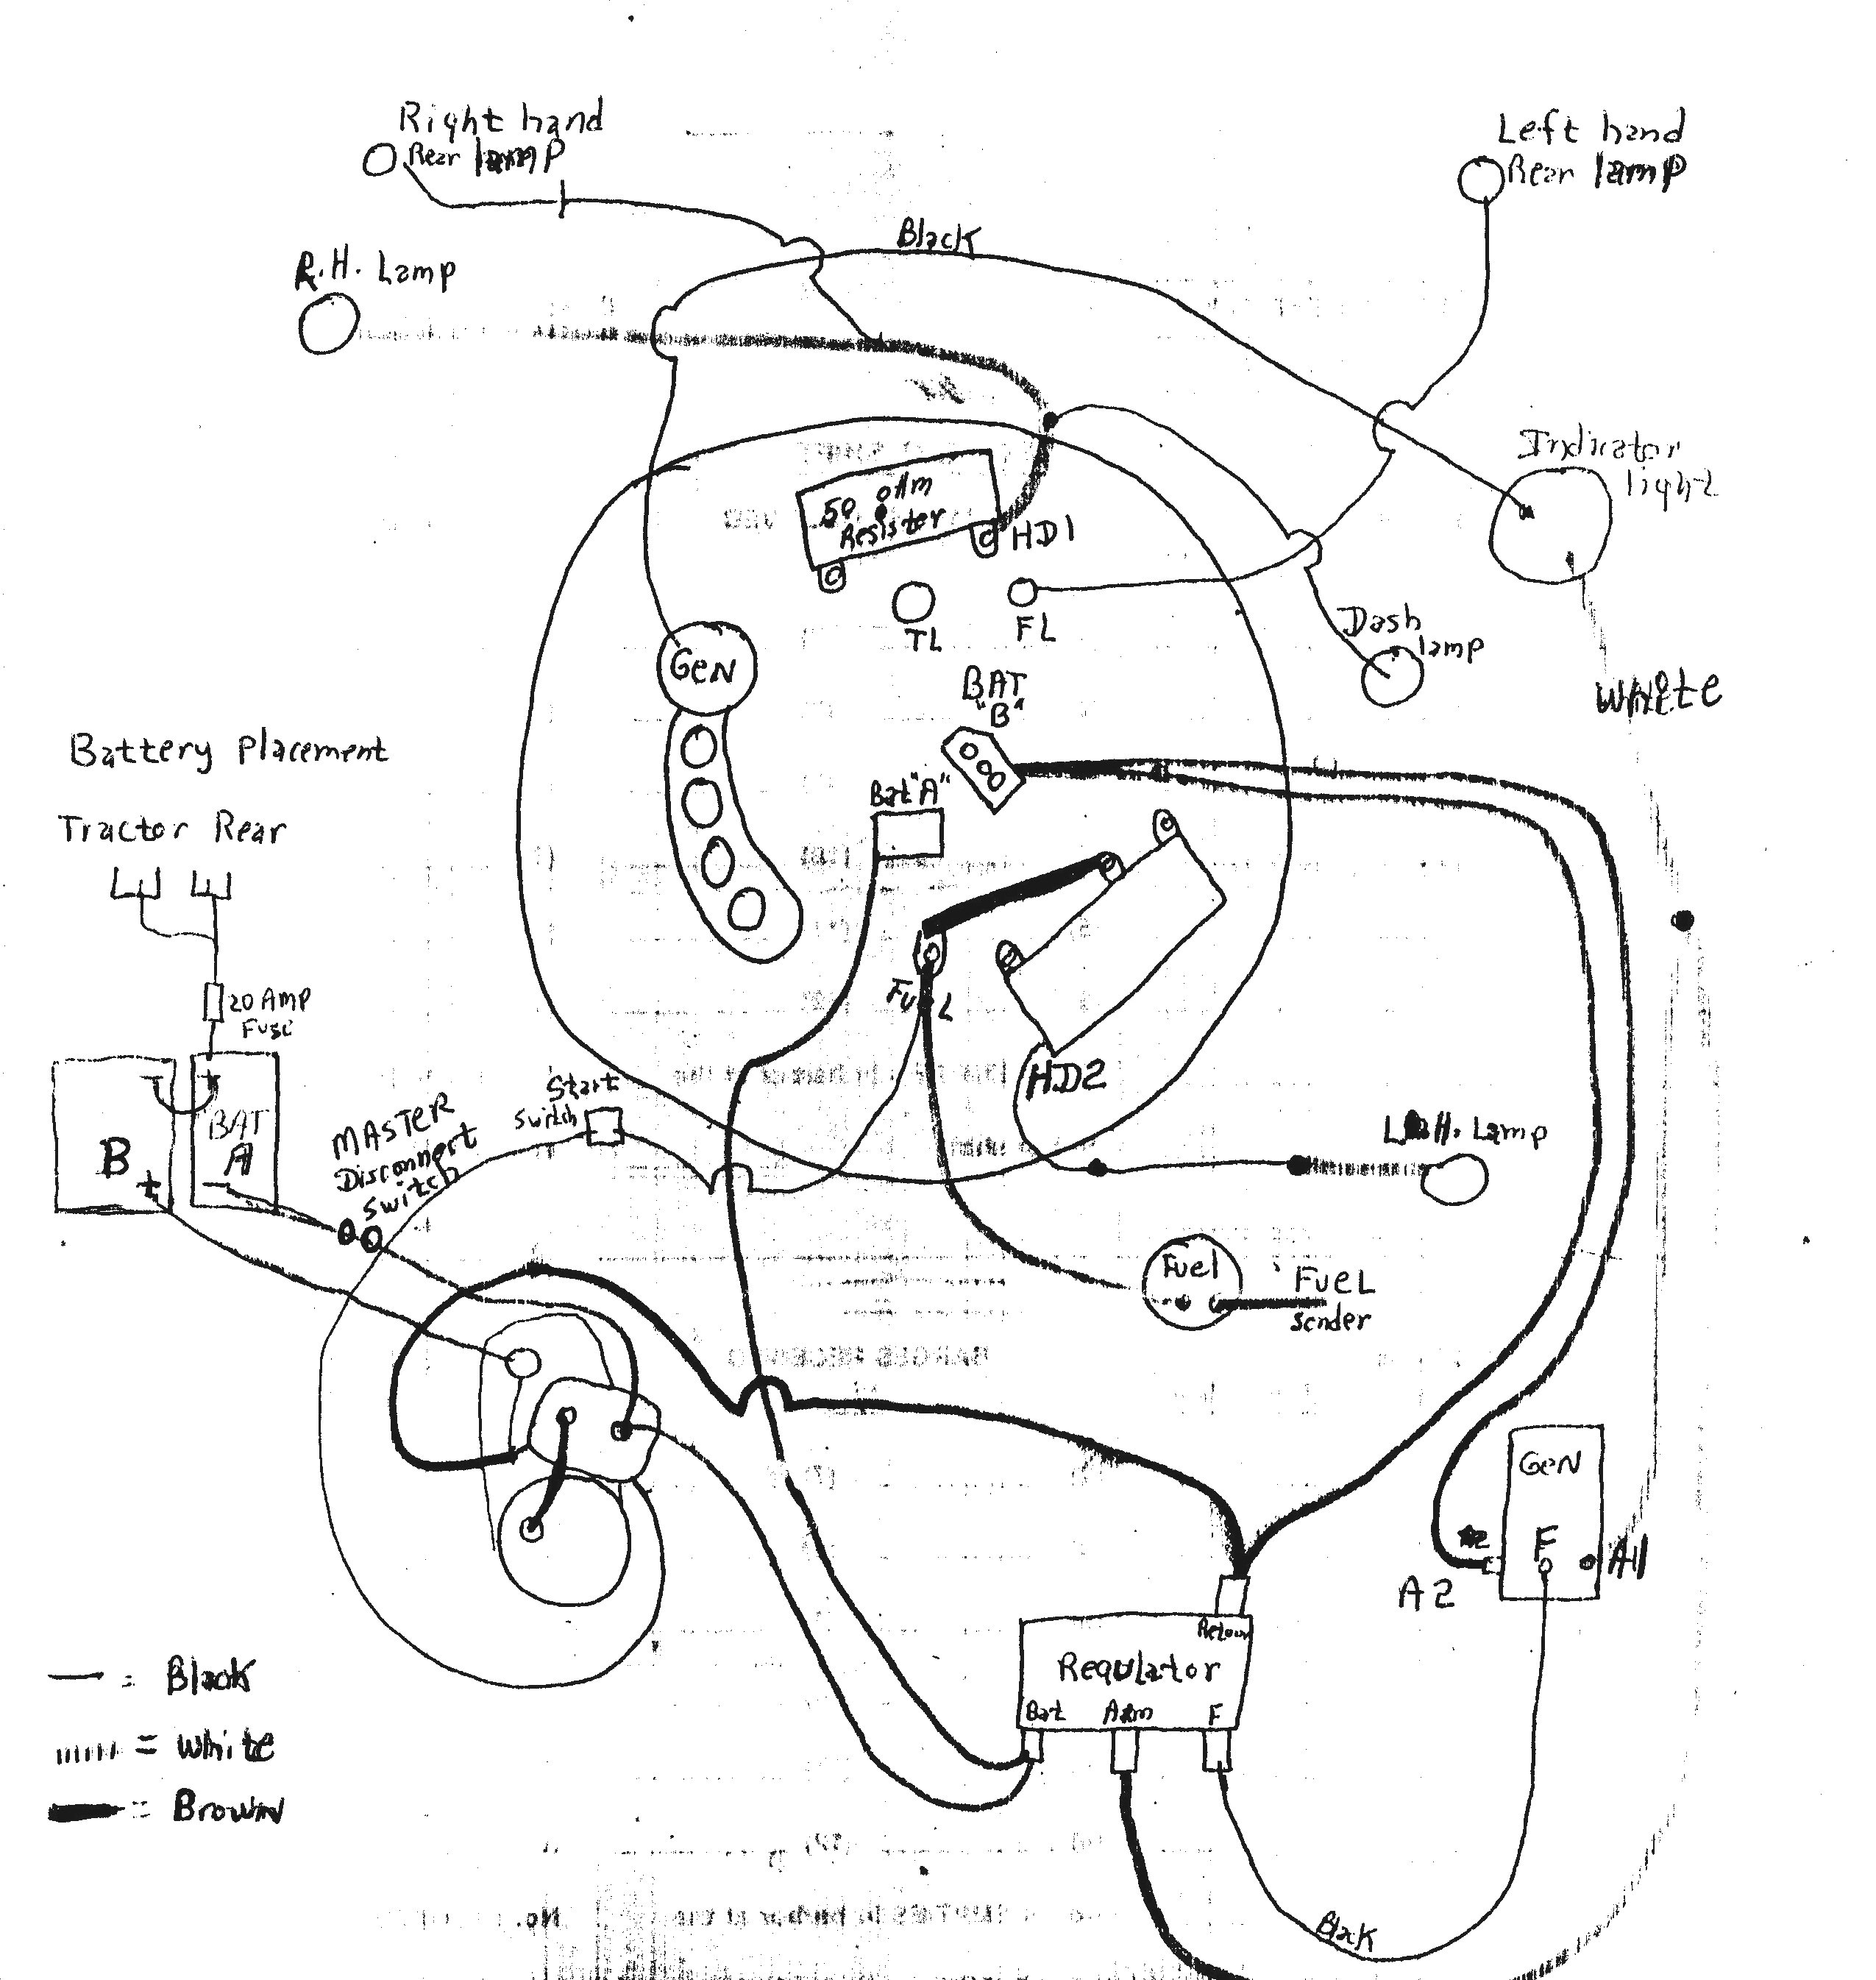 24volt_wiring_diagram jd a wiring diagram wiring diagram simonand john deere 3020 wiring diagram pdf at gsmx.co